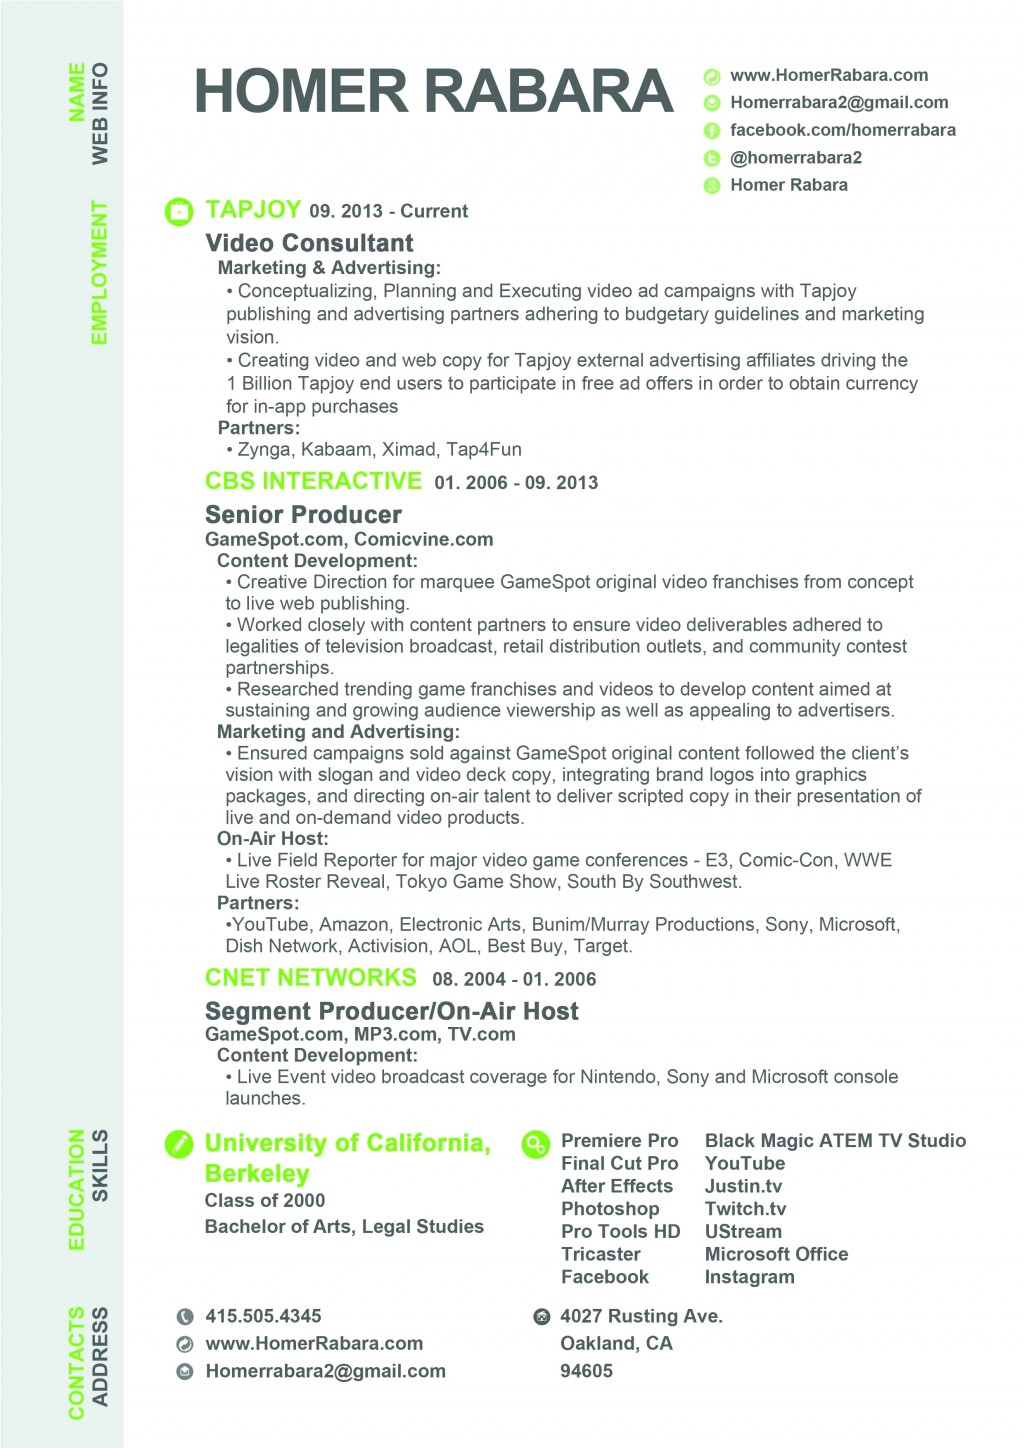 018 Custom College Essays Essay Example The Legitimacy Of Buying Online Editor Resumes Freelance Editing Videographer Resume New Video Excellent Writing Service Large